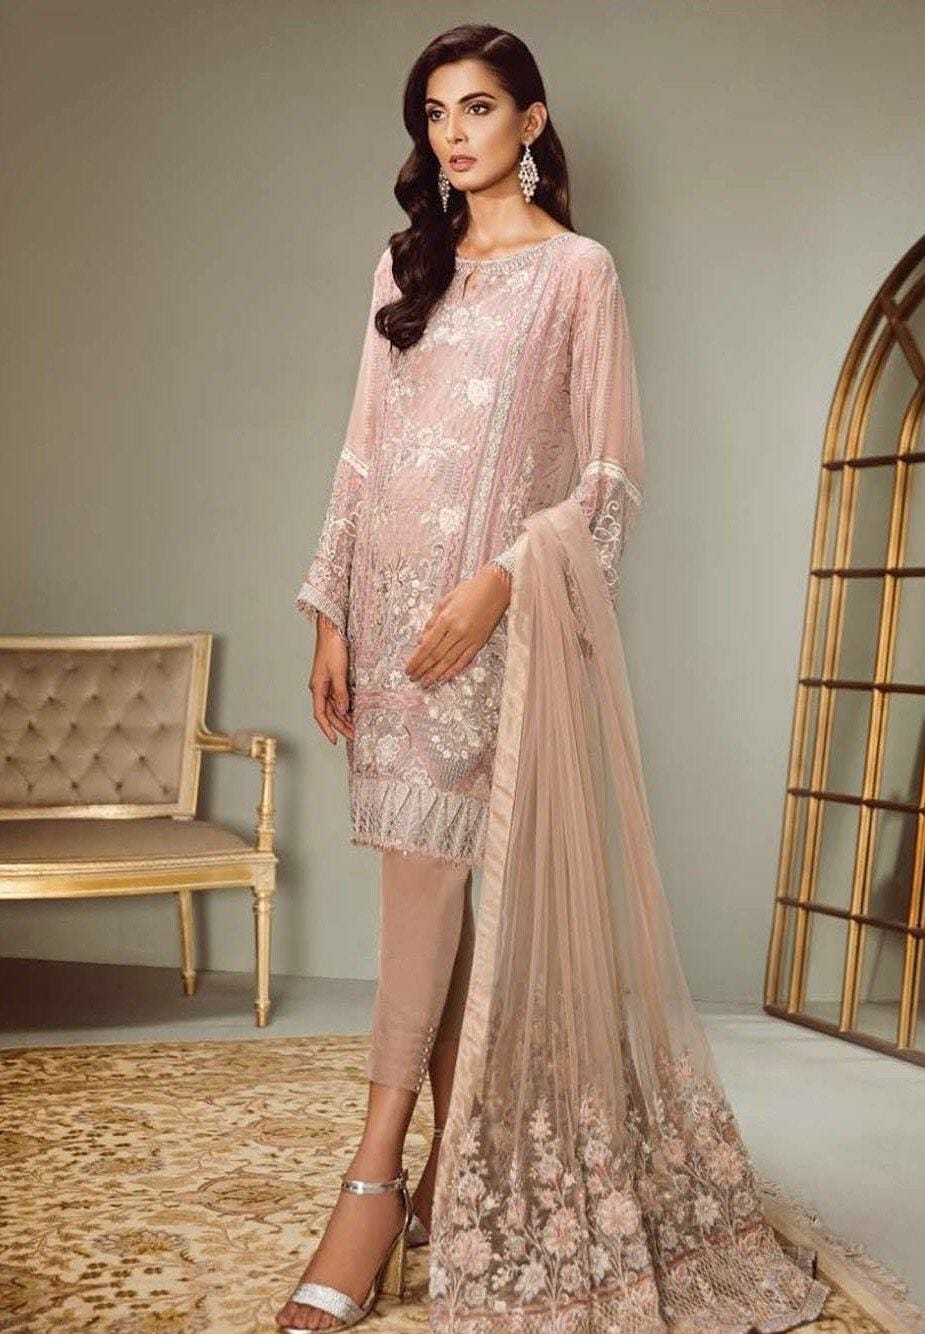 Barooque 04 panache-Heavy Embroided 3pc unstiched chiffon dress with embroided chiffon dupatta. - gracestore.pk